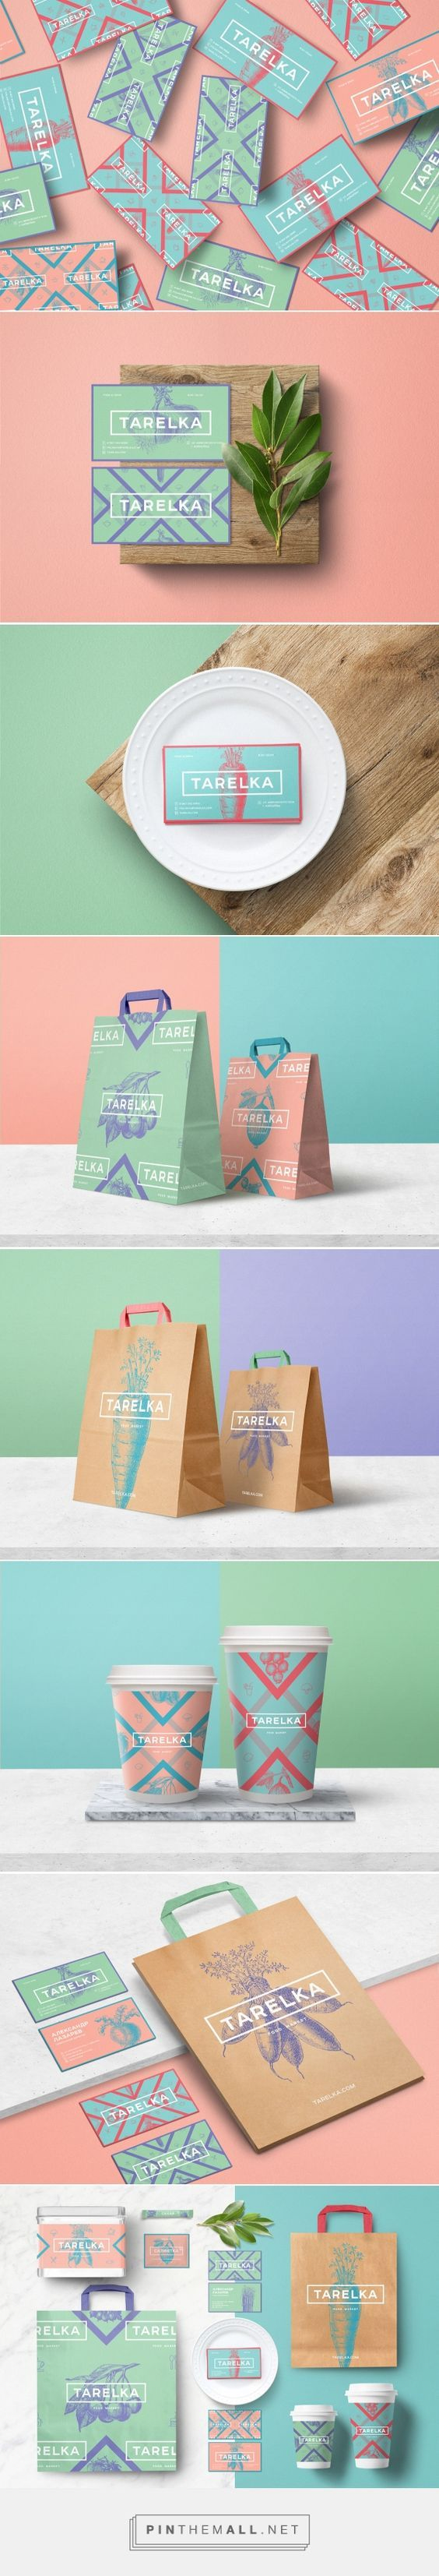 Tarelka Food Market Branding by Bureau Bumblebee | Fivestar Branding Agency – Design and Branding Agency & Curated Inspiration Gallery